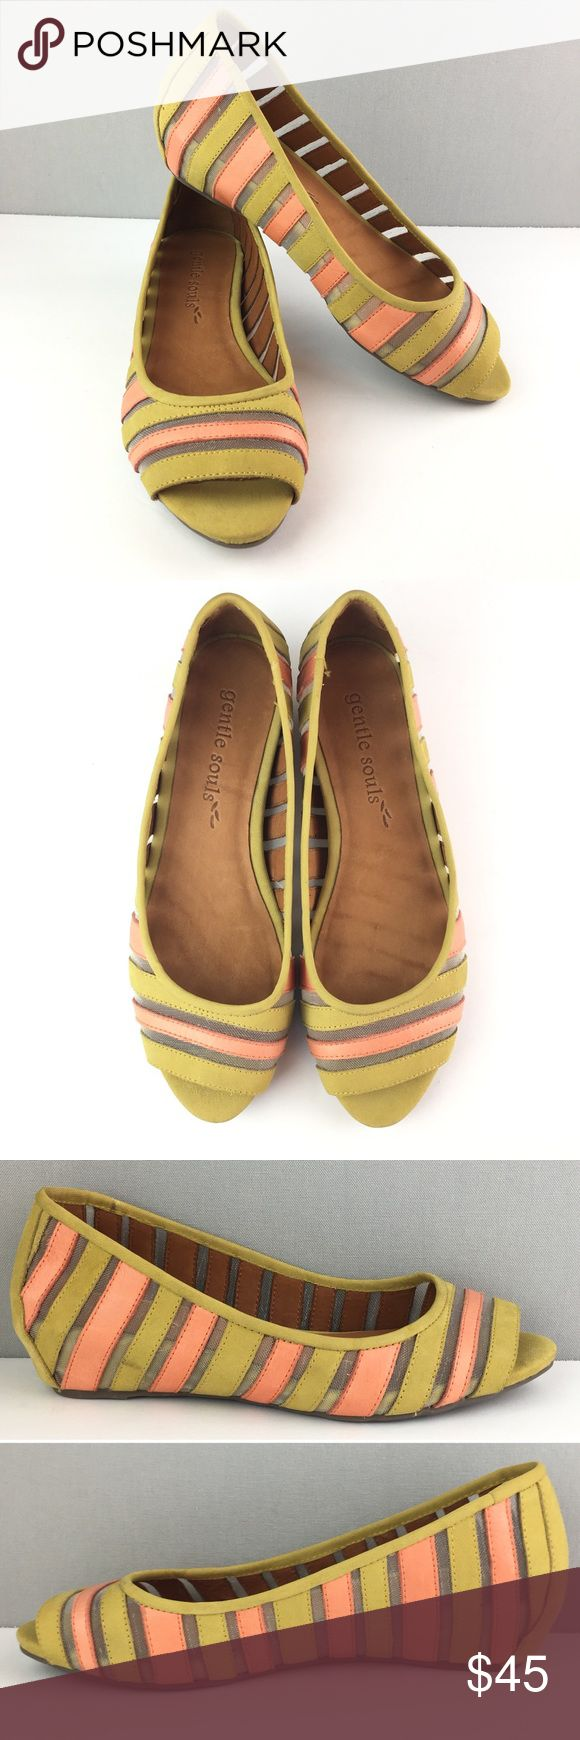 Gentle Soles Peep Toe Striped Ballet Flats Coral Gentle Soles Flats -Style name: Lily Drop -Peep toe  -Green and coral stripes with sheer stripes -Leather upper -Size 10M Gentle Souls Shoes Flats & Loafers